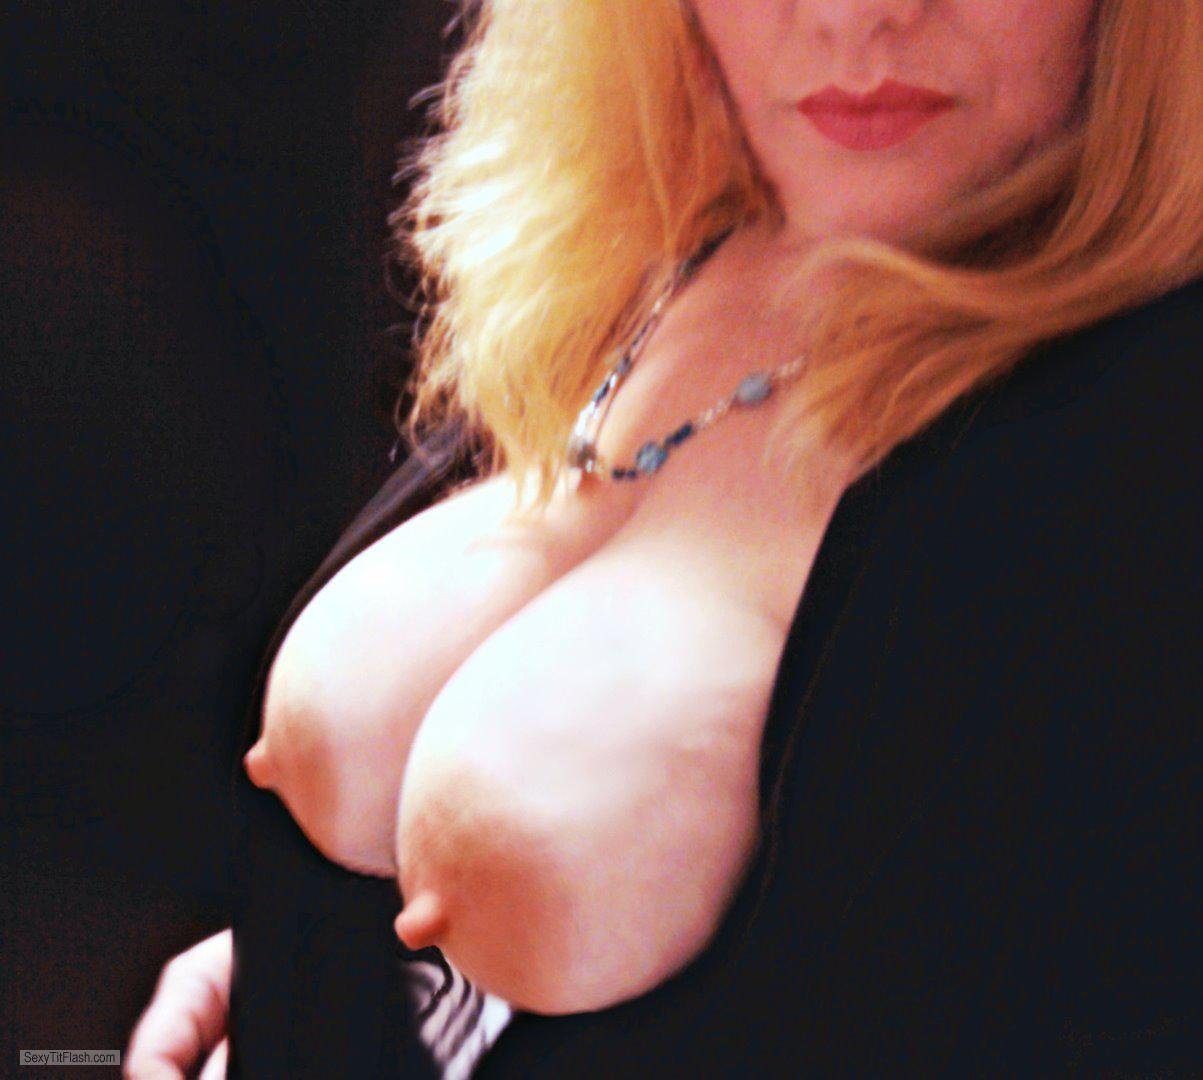 Tit Flash: My Big Tits (Selfie) - DDs4u2c from United States